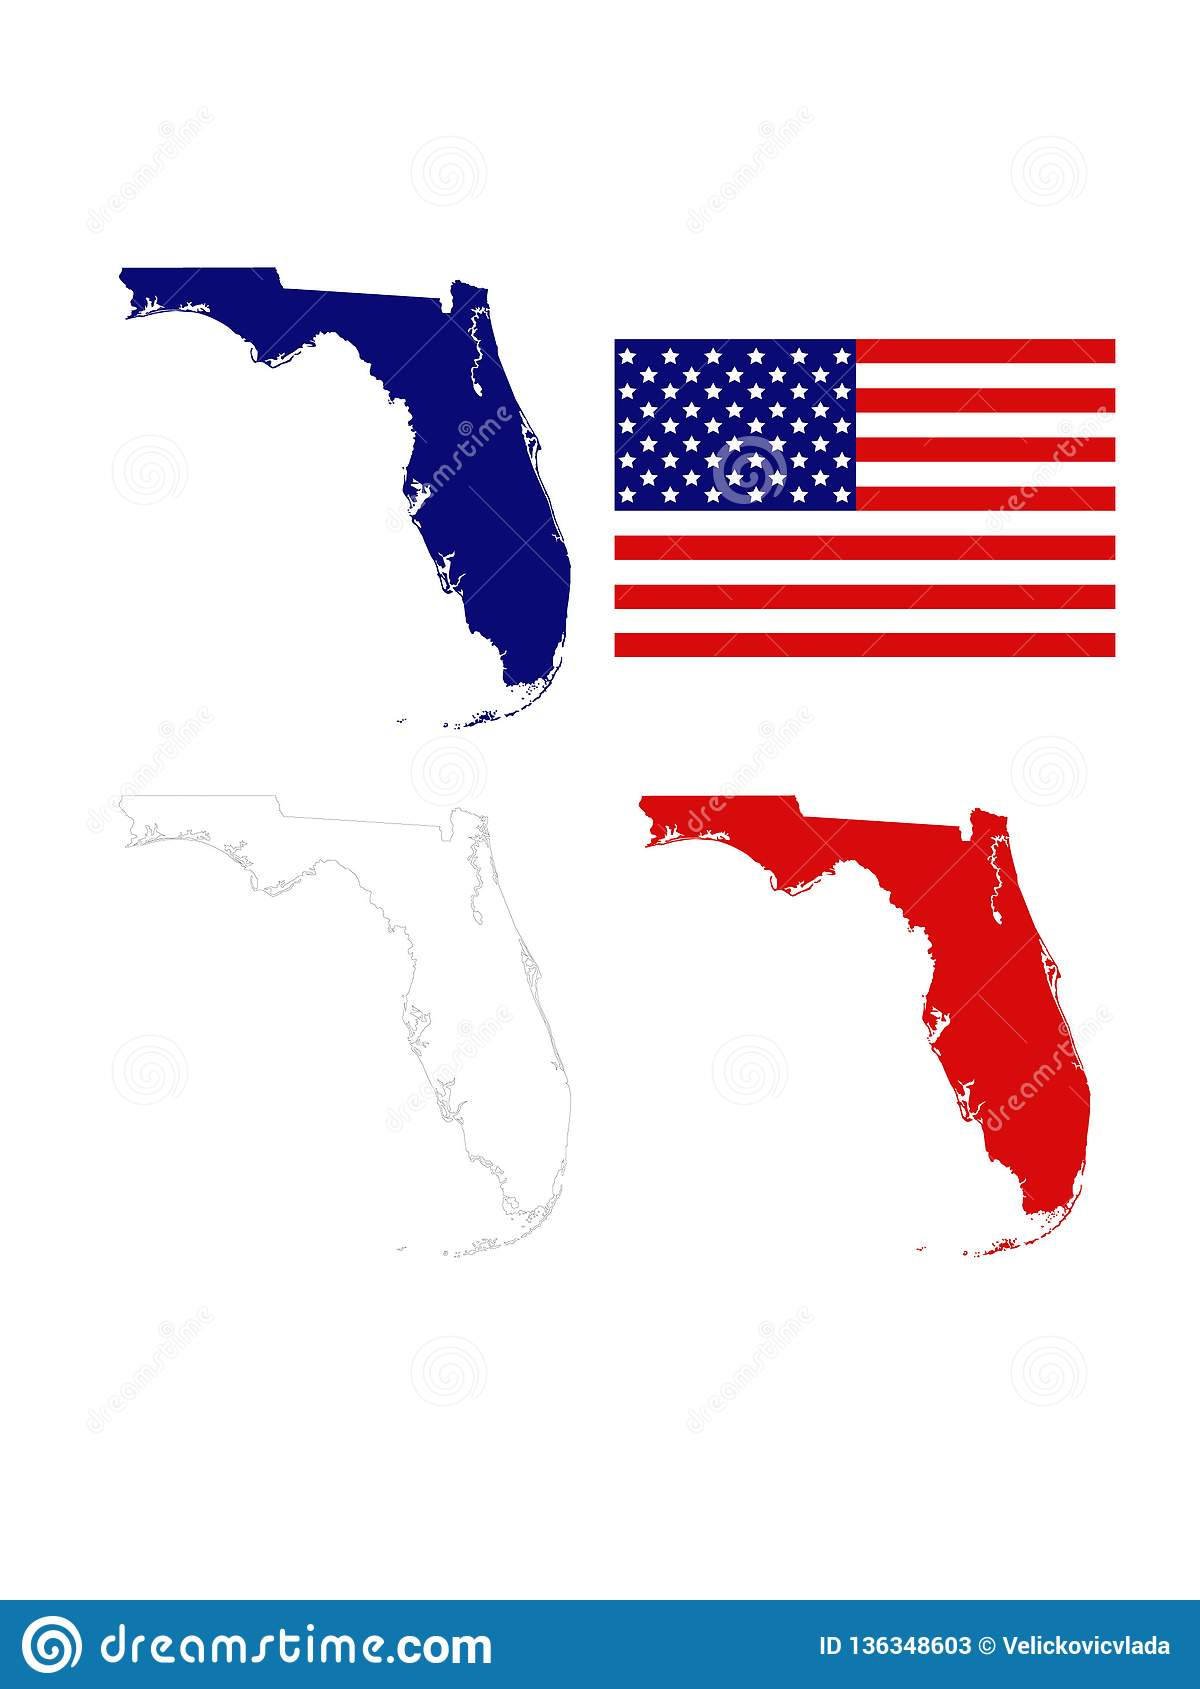 Florida Maps With USA Flag - Southernmost Contiguous State ...